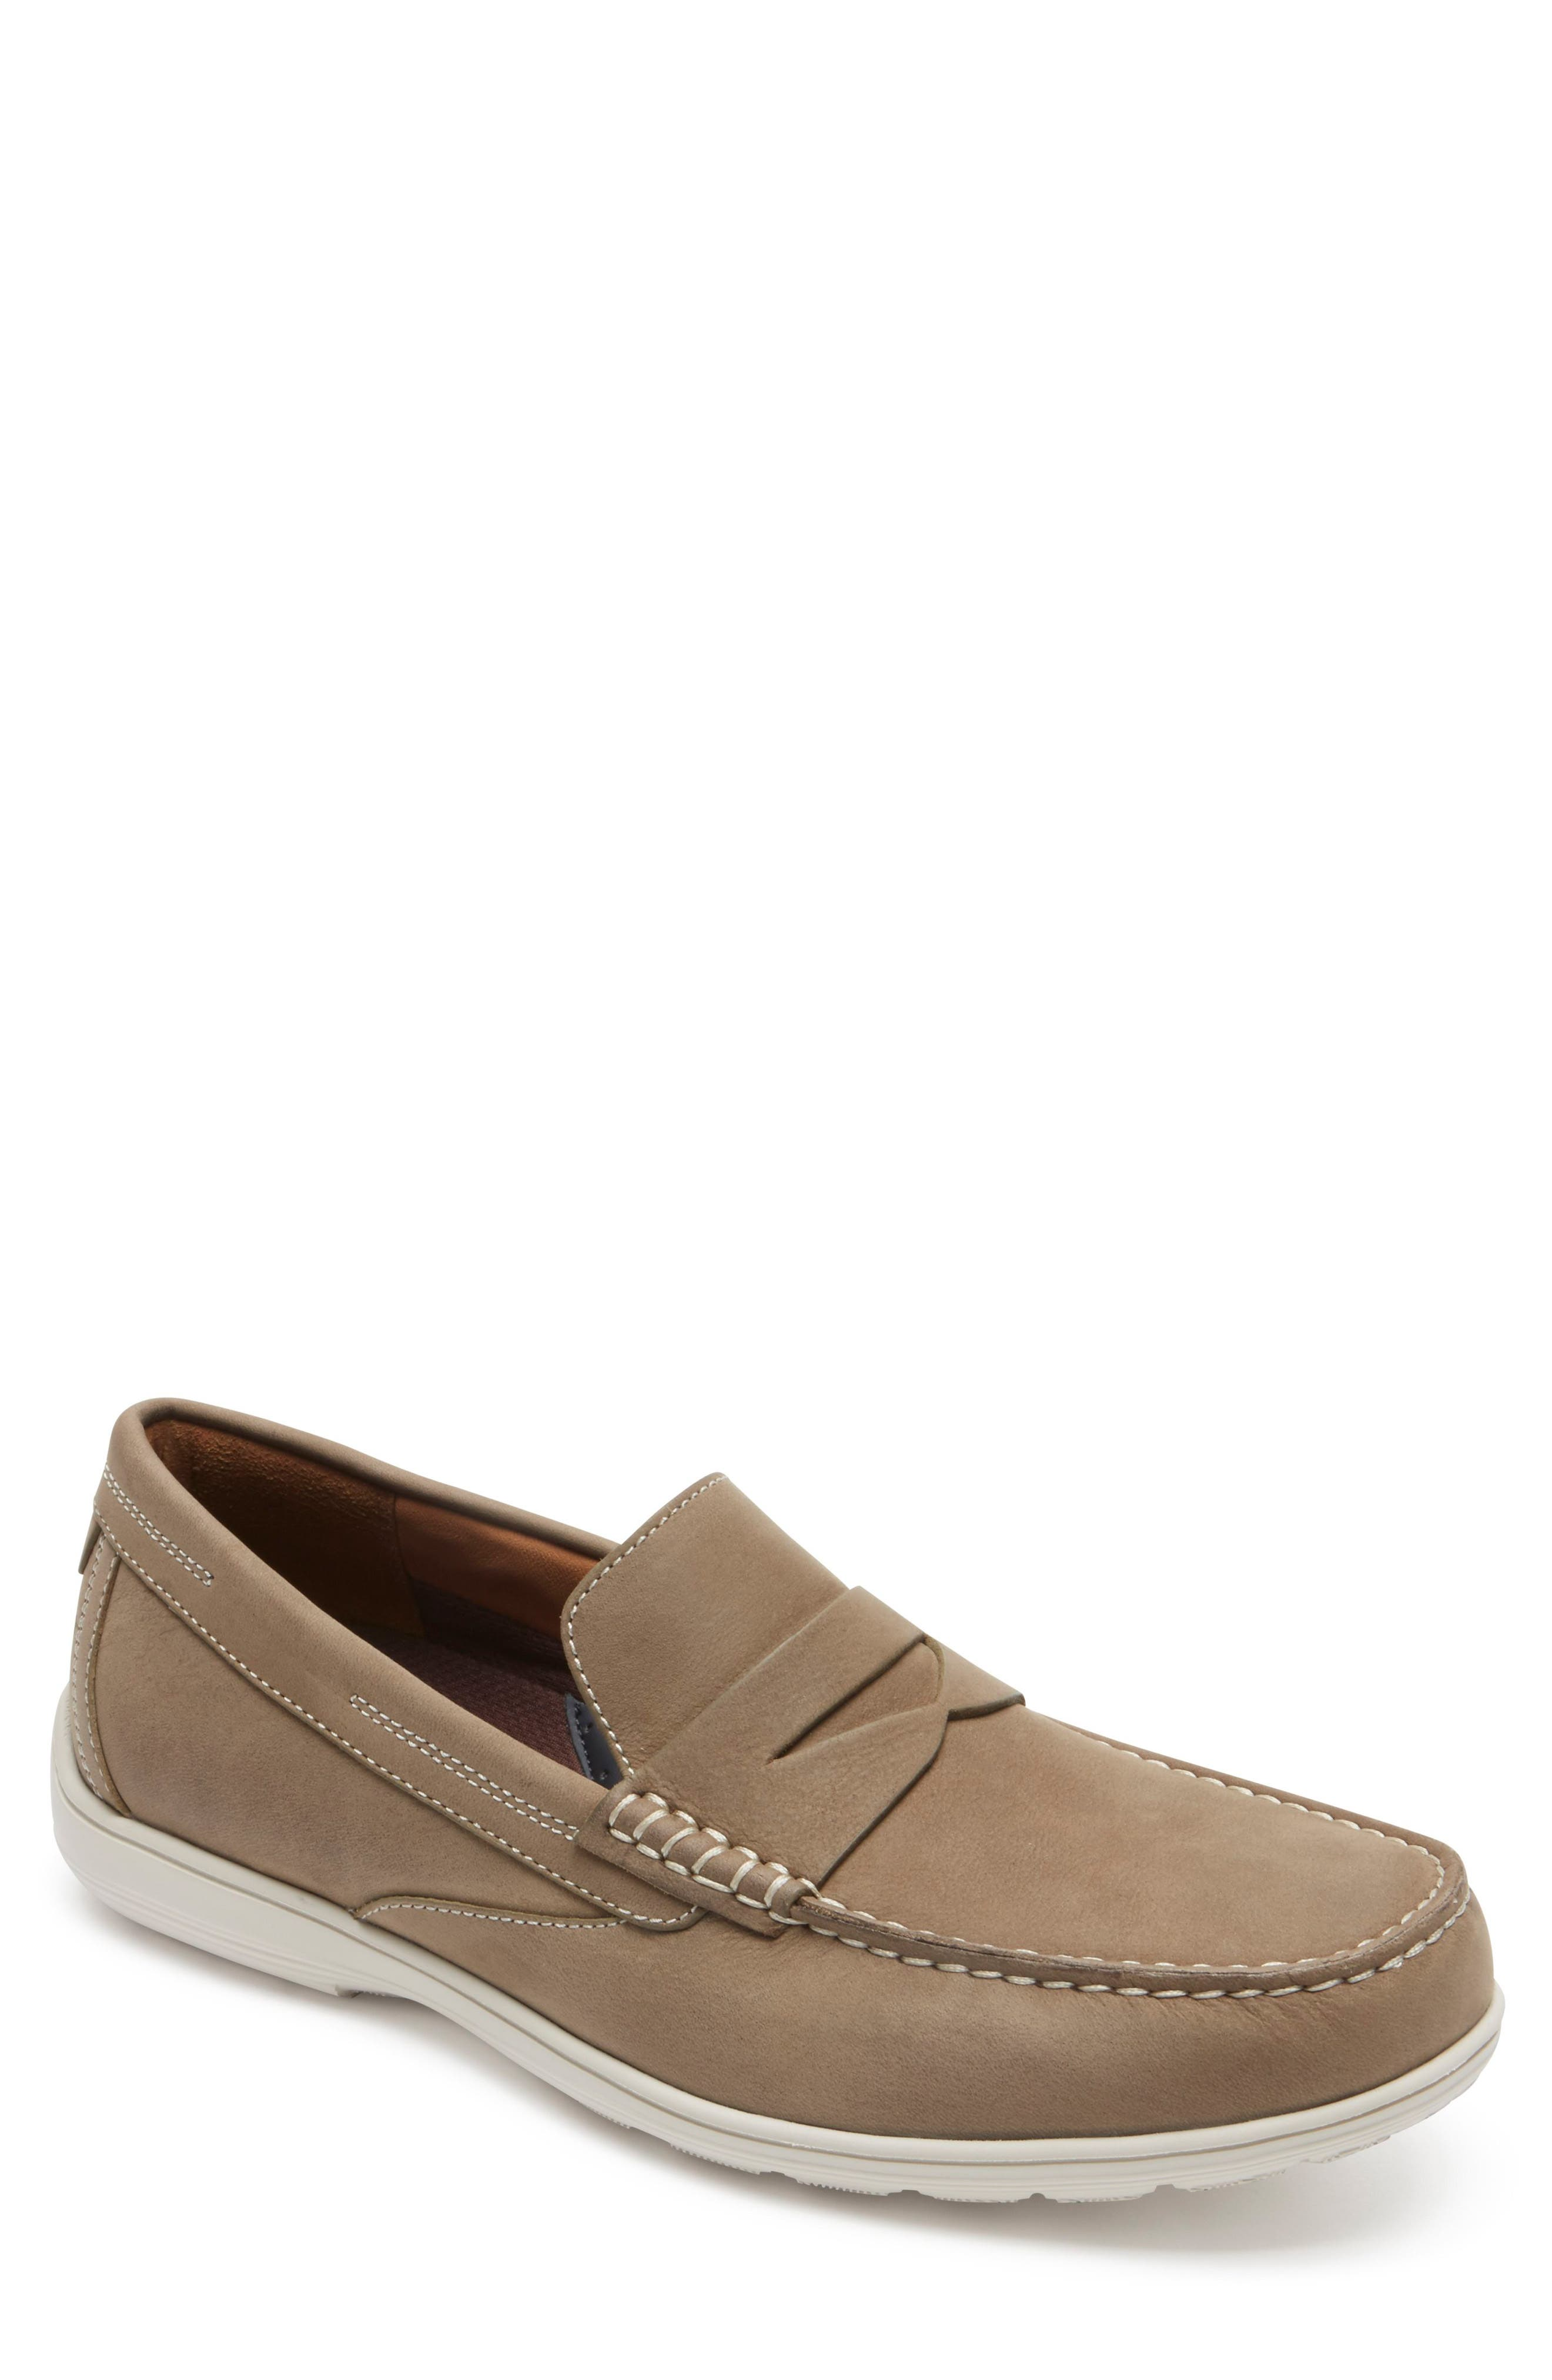 Total Motion Penny Loafer,                             Main thumbnail 2, color,